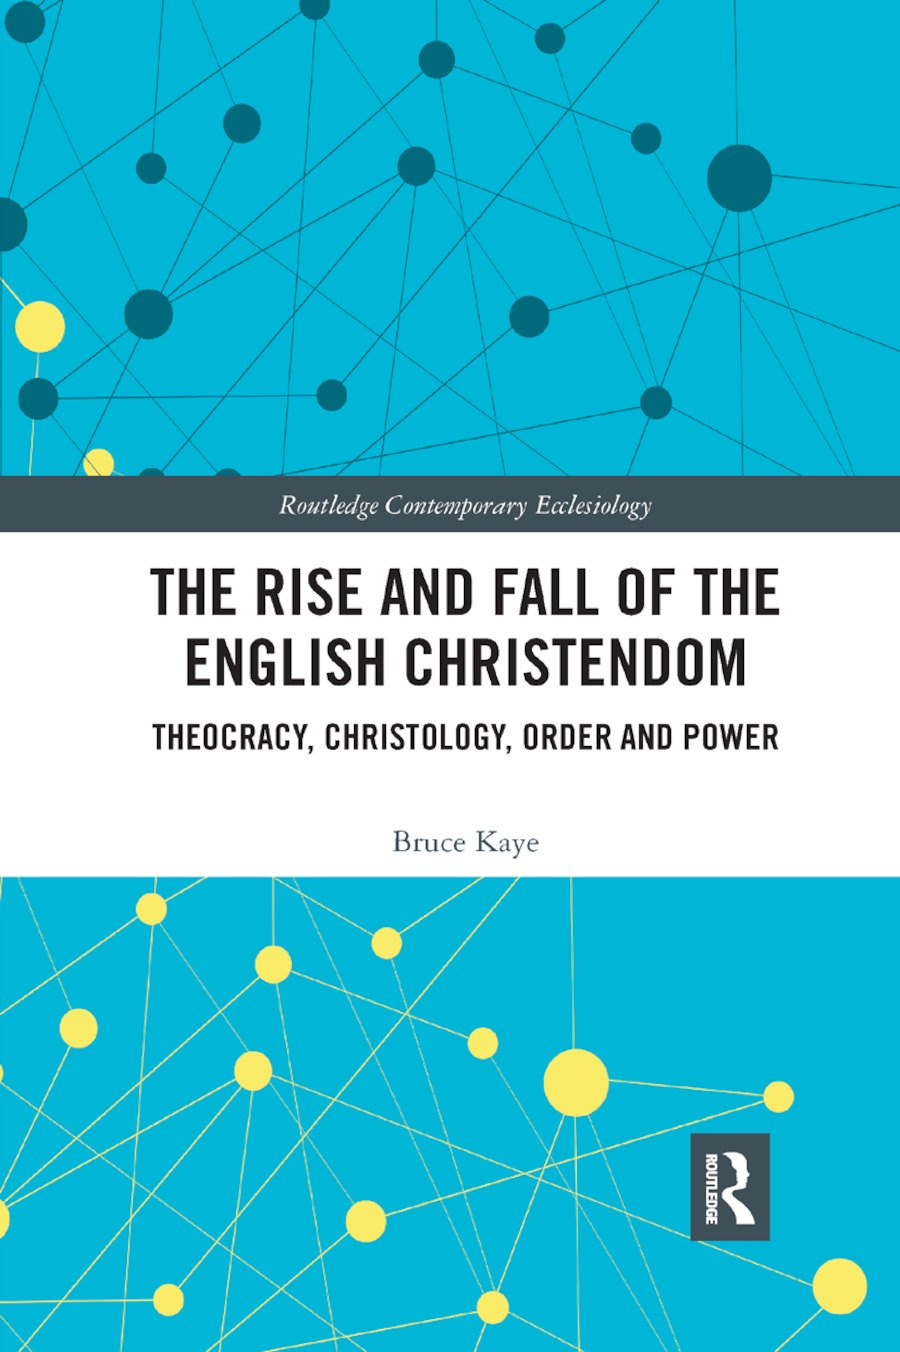 The Rise and Fall of the English Christendom: Theocracy, Christology, Order and Power book cover